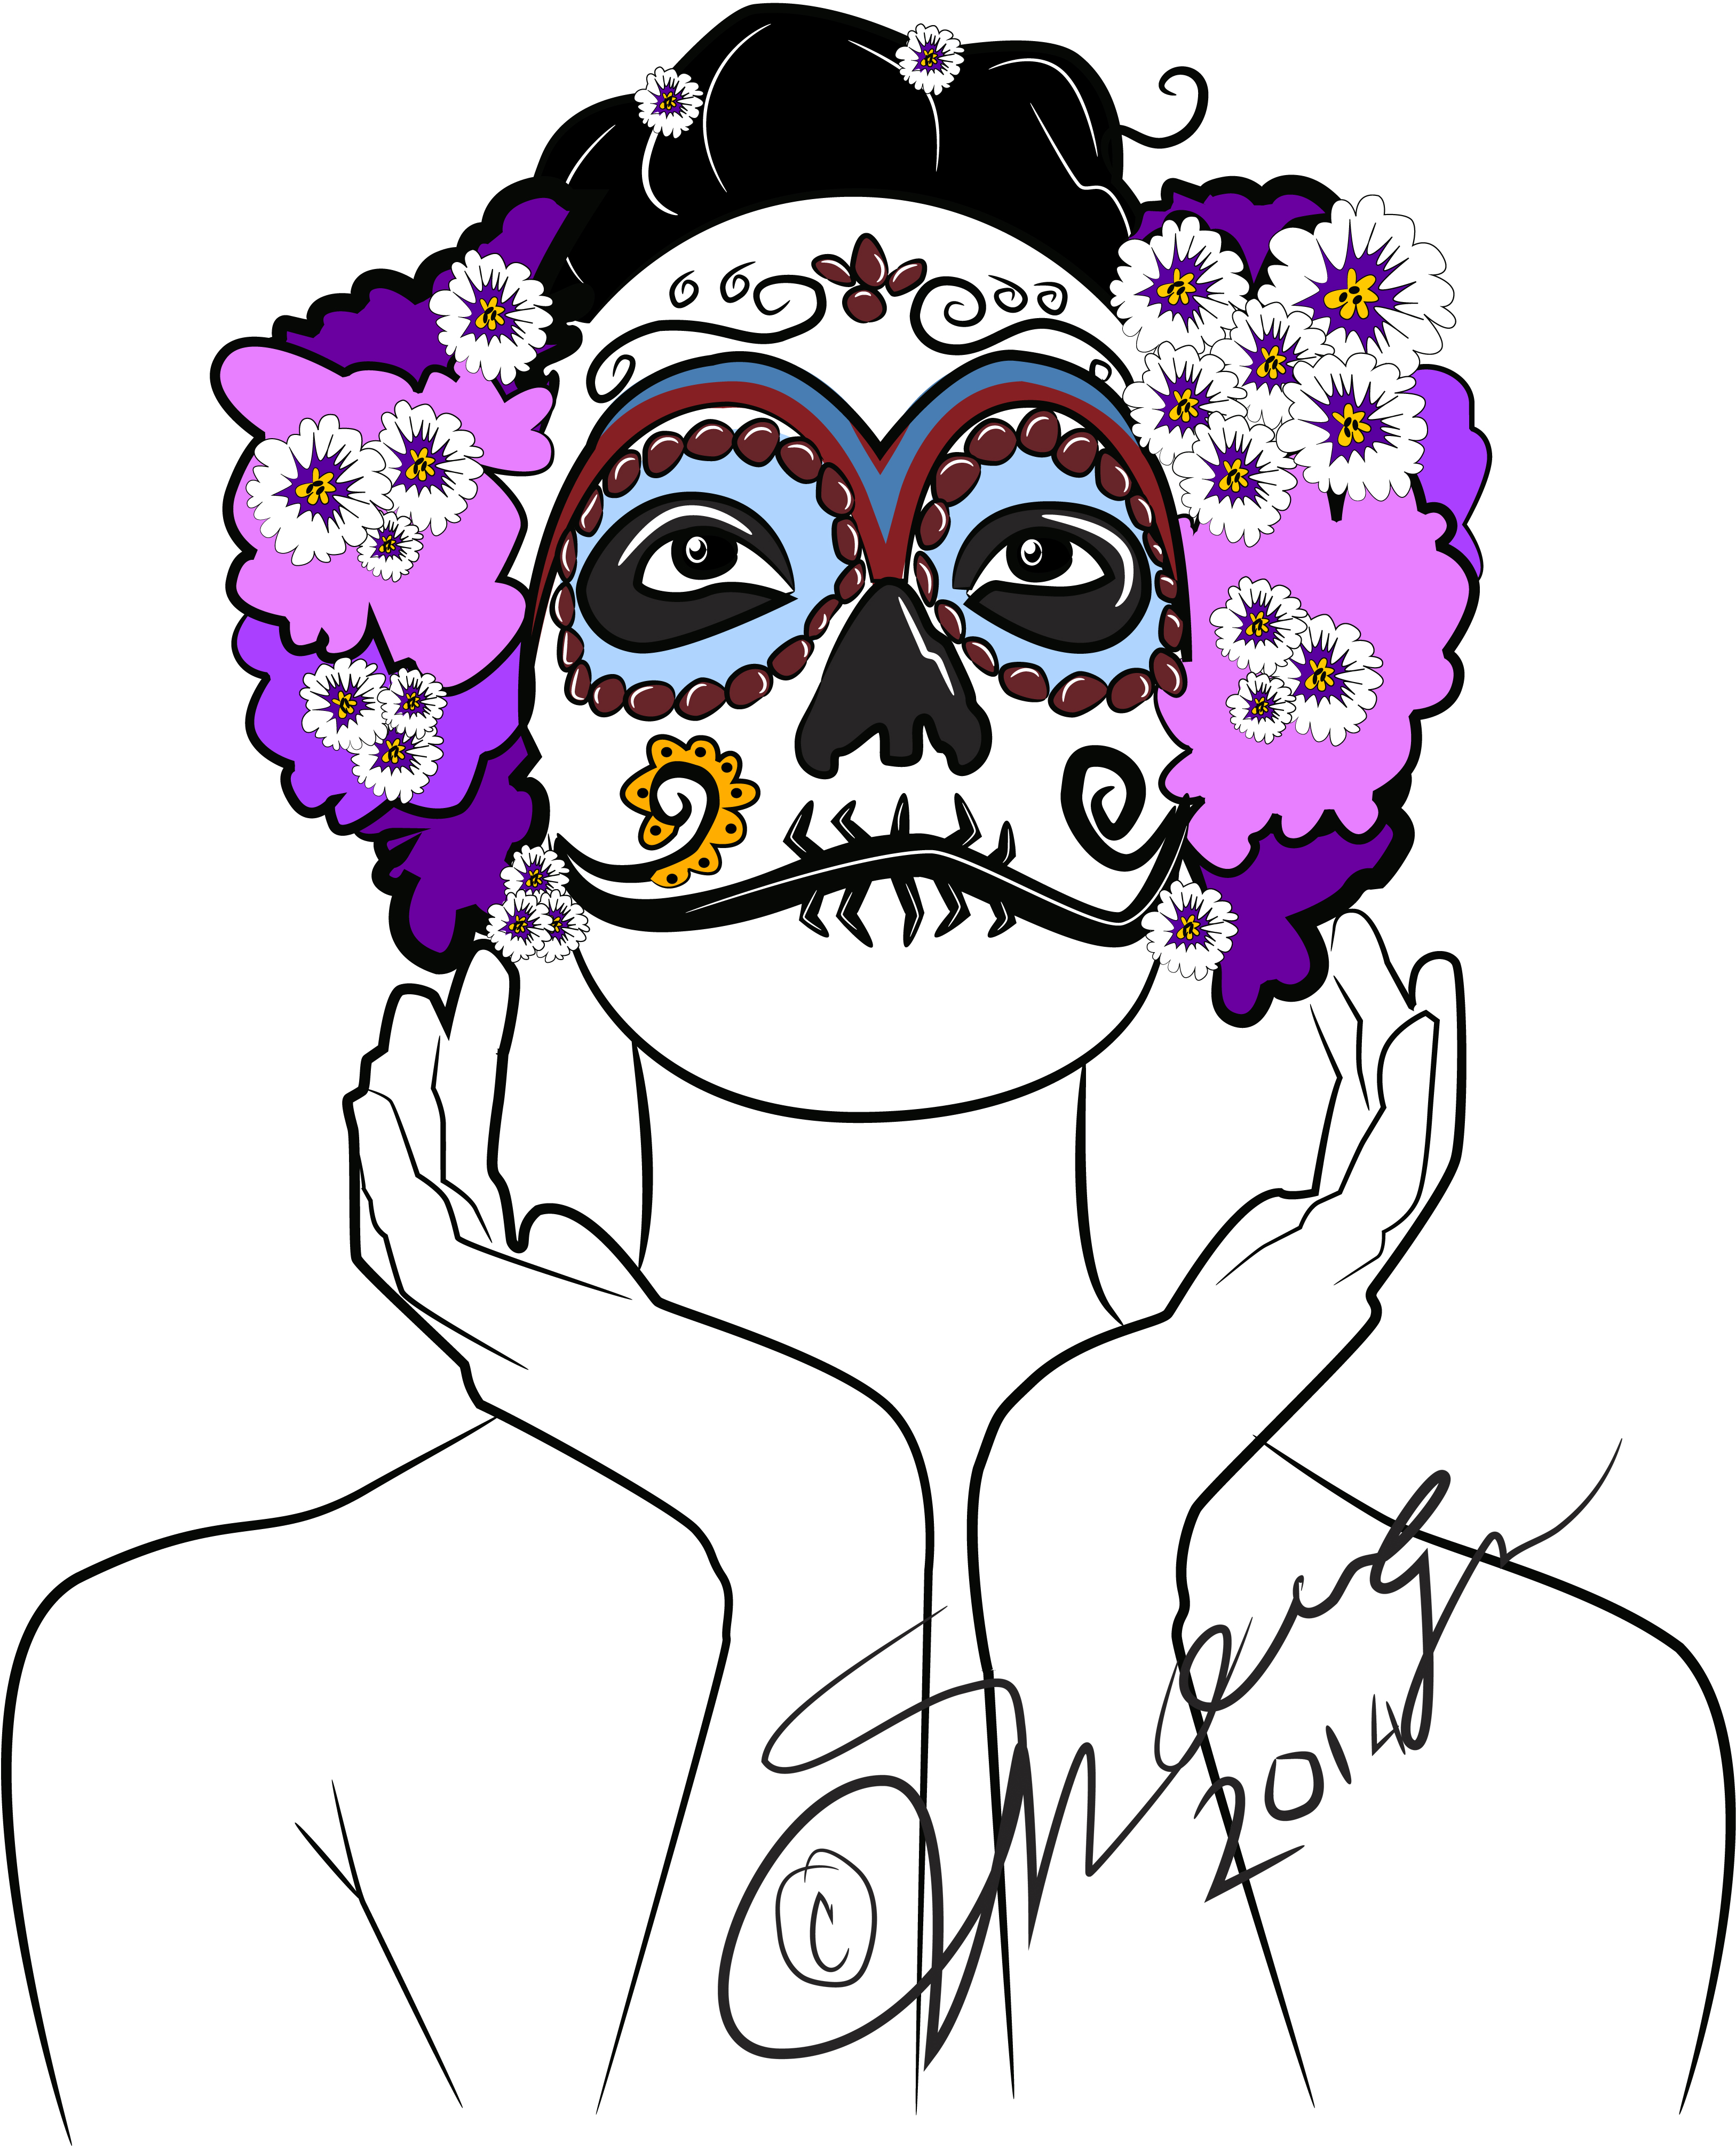 Day of the day mask 01